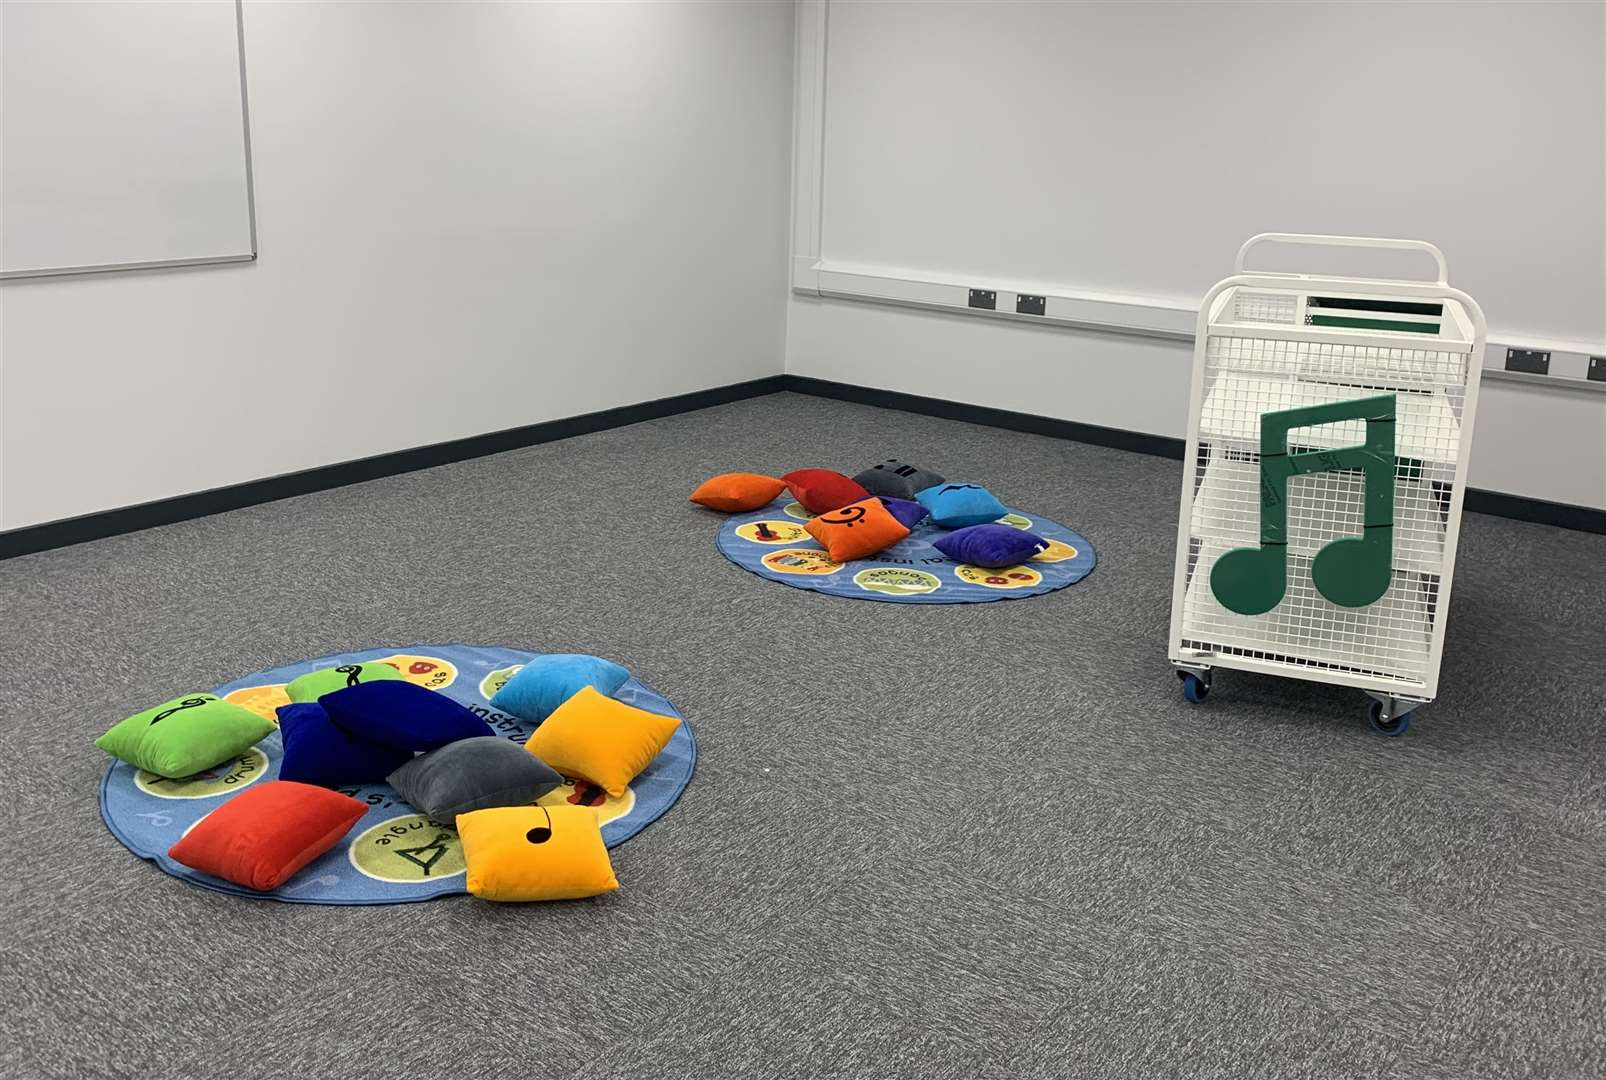 Some equipment has already started to arrive for the school's music room